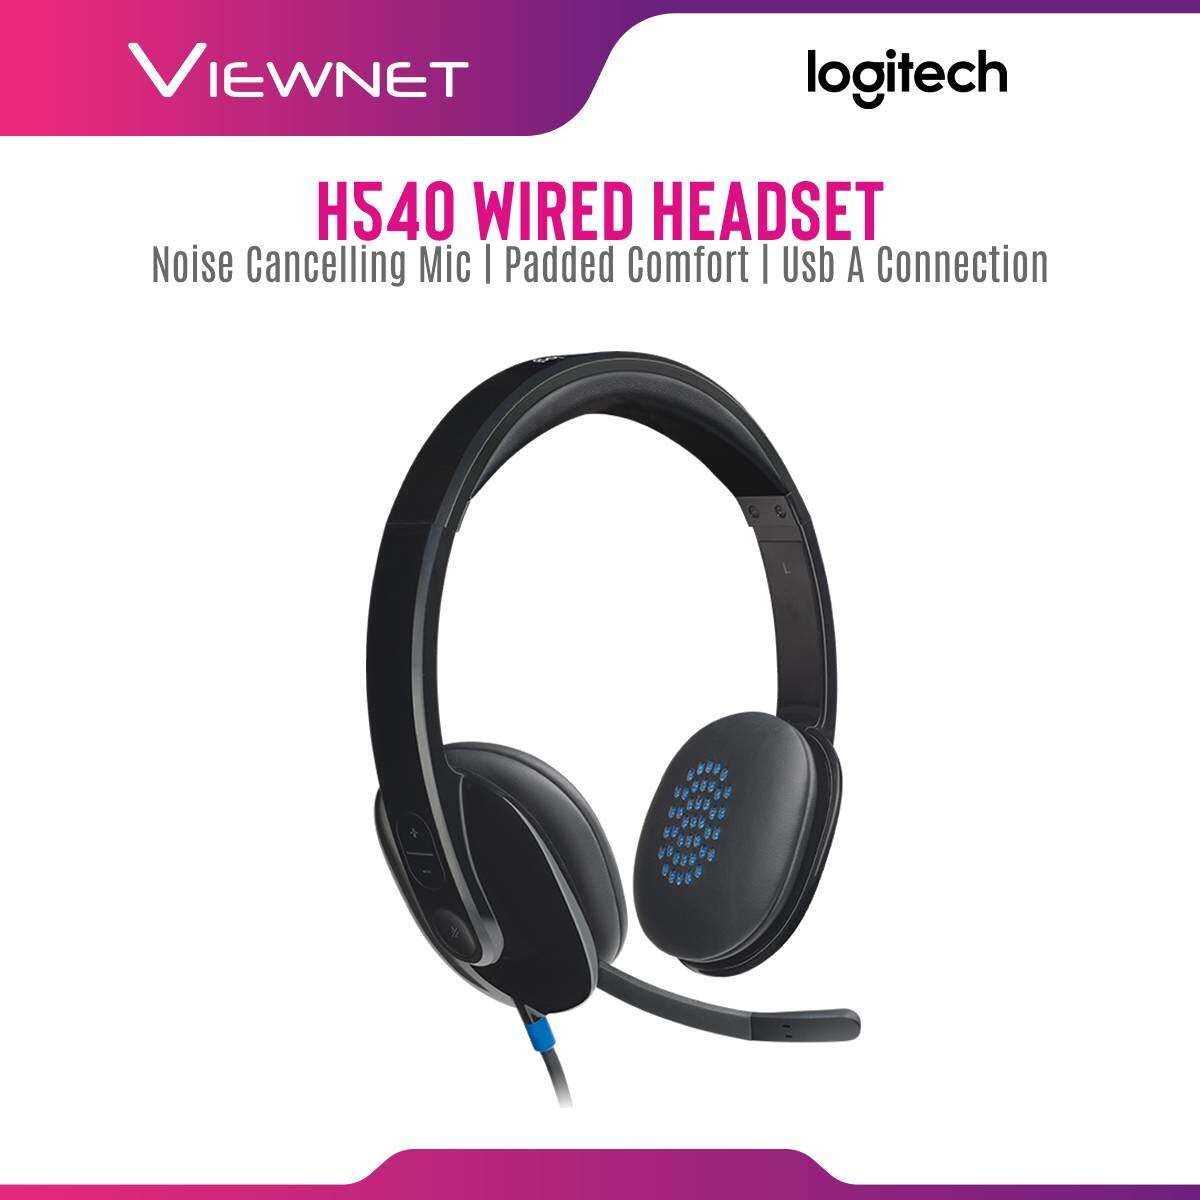 Logitech Wired Headset H540 with Noise Canceling Mic, On-Ear Controls, Padded Comfort, USB-A Connection (981-000482)